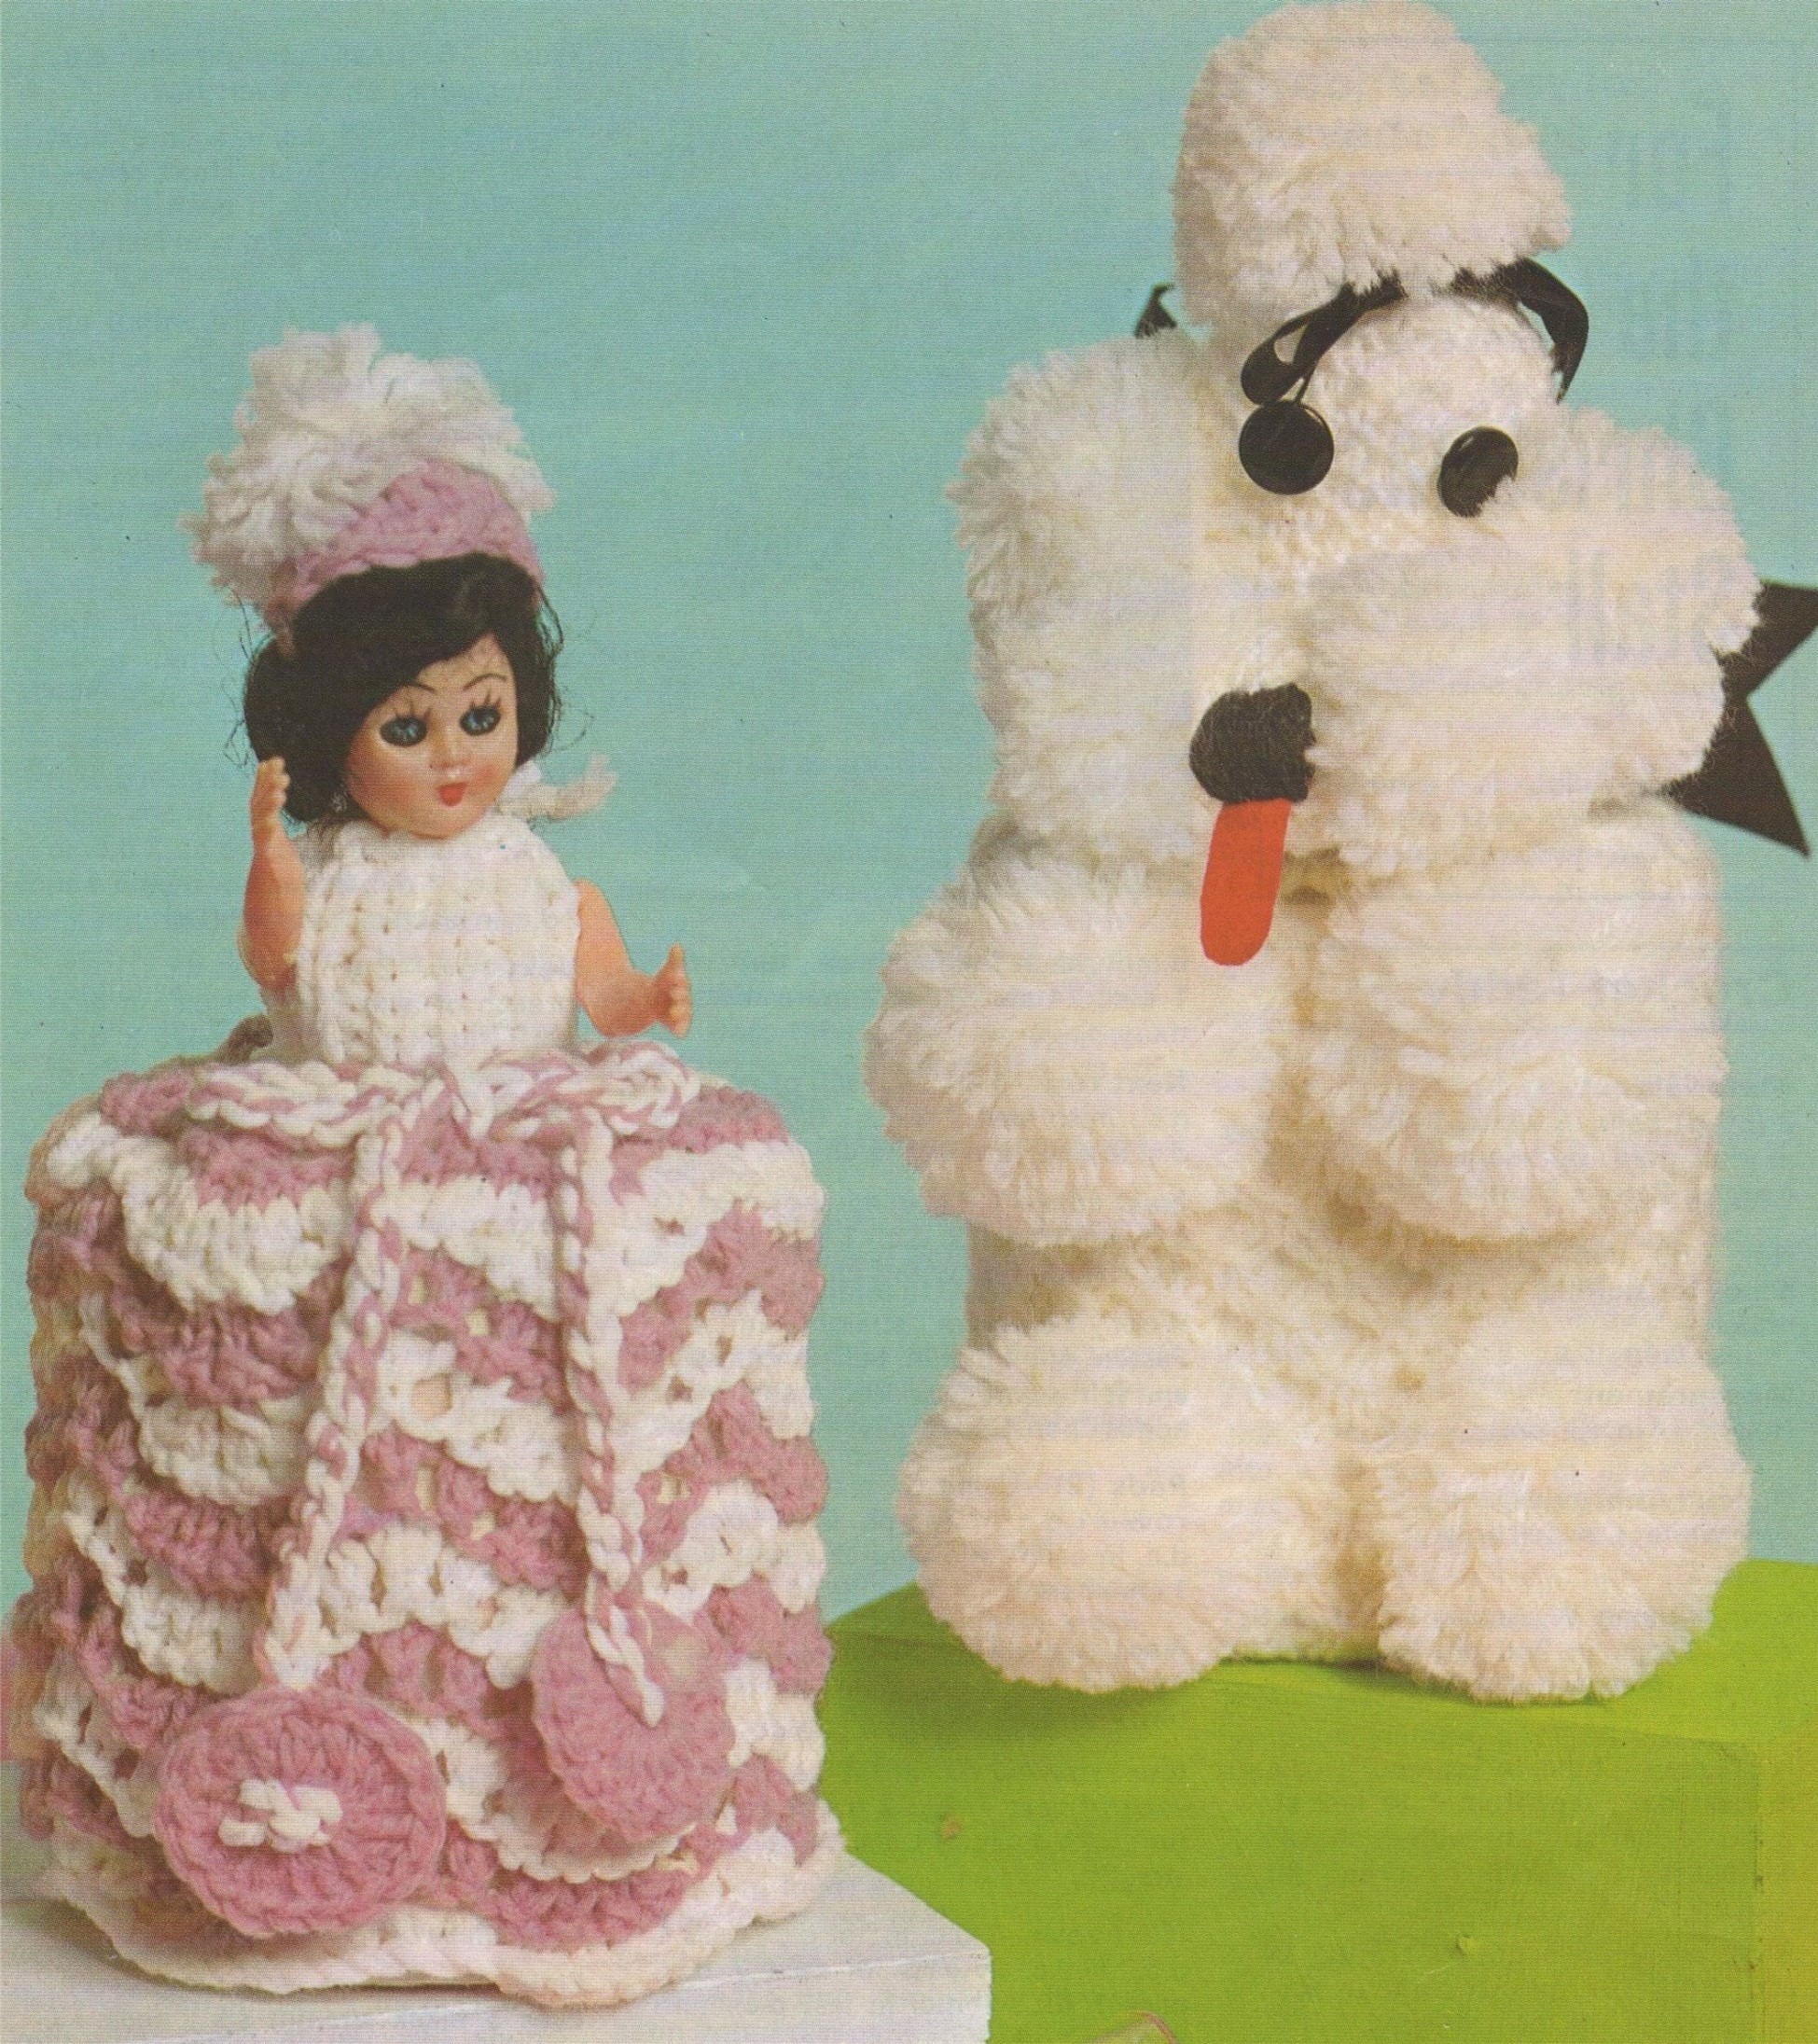 Bathroom Cover Ups Crinoline Doll Dress and Poodle Dog Cover